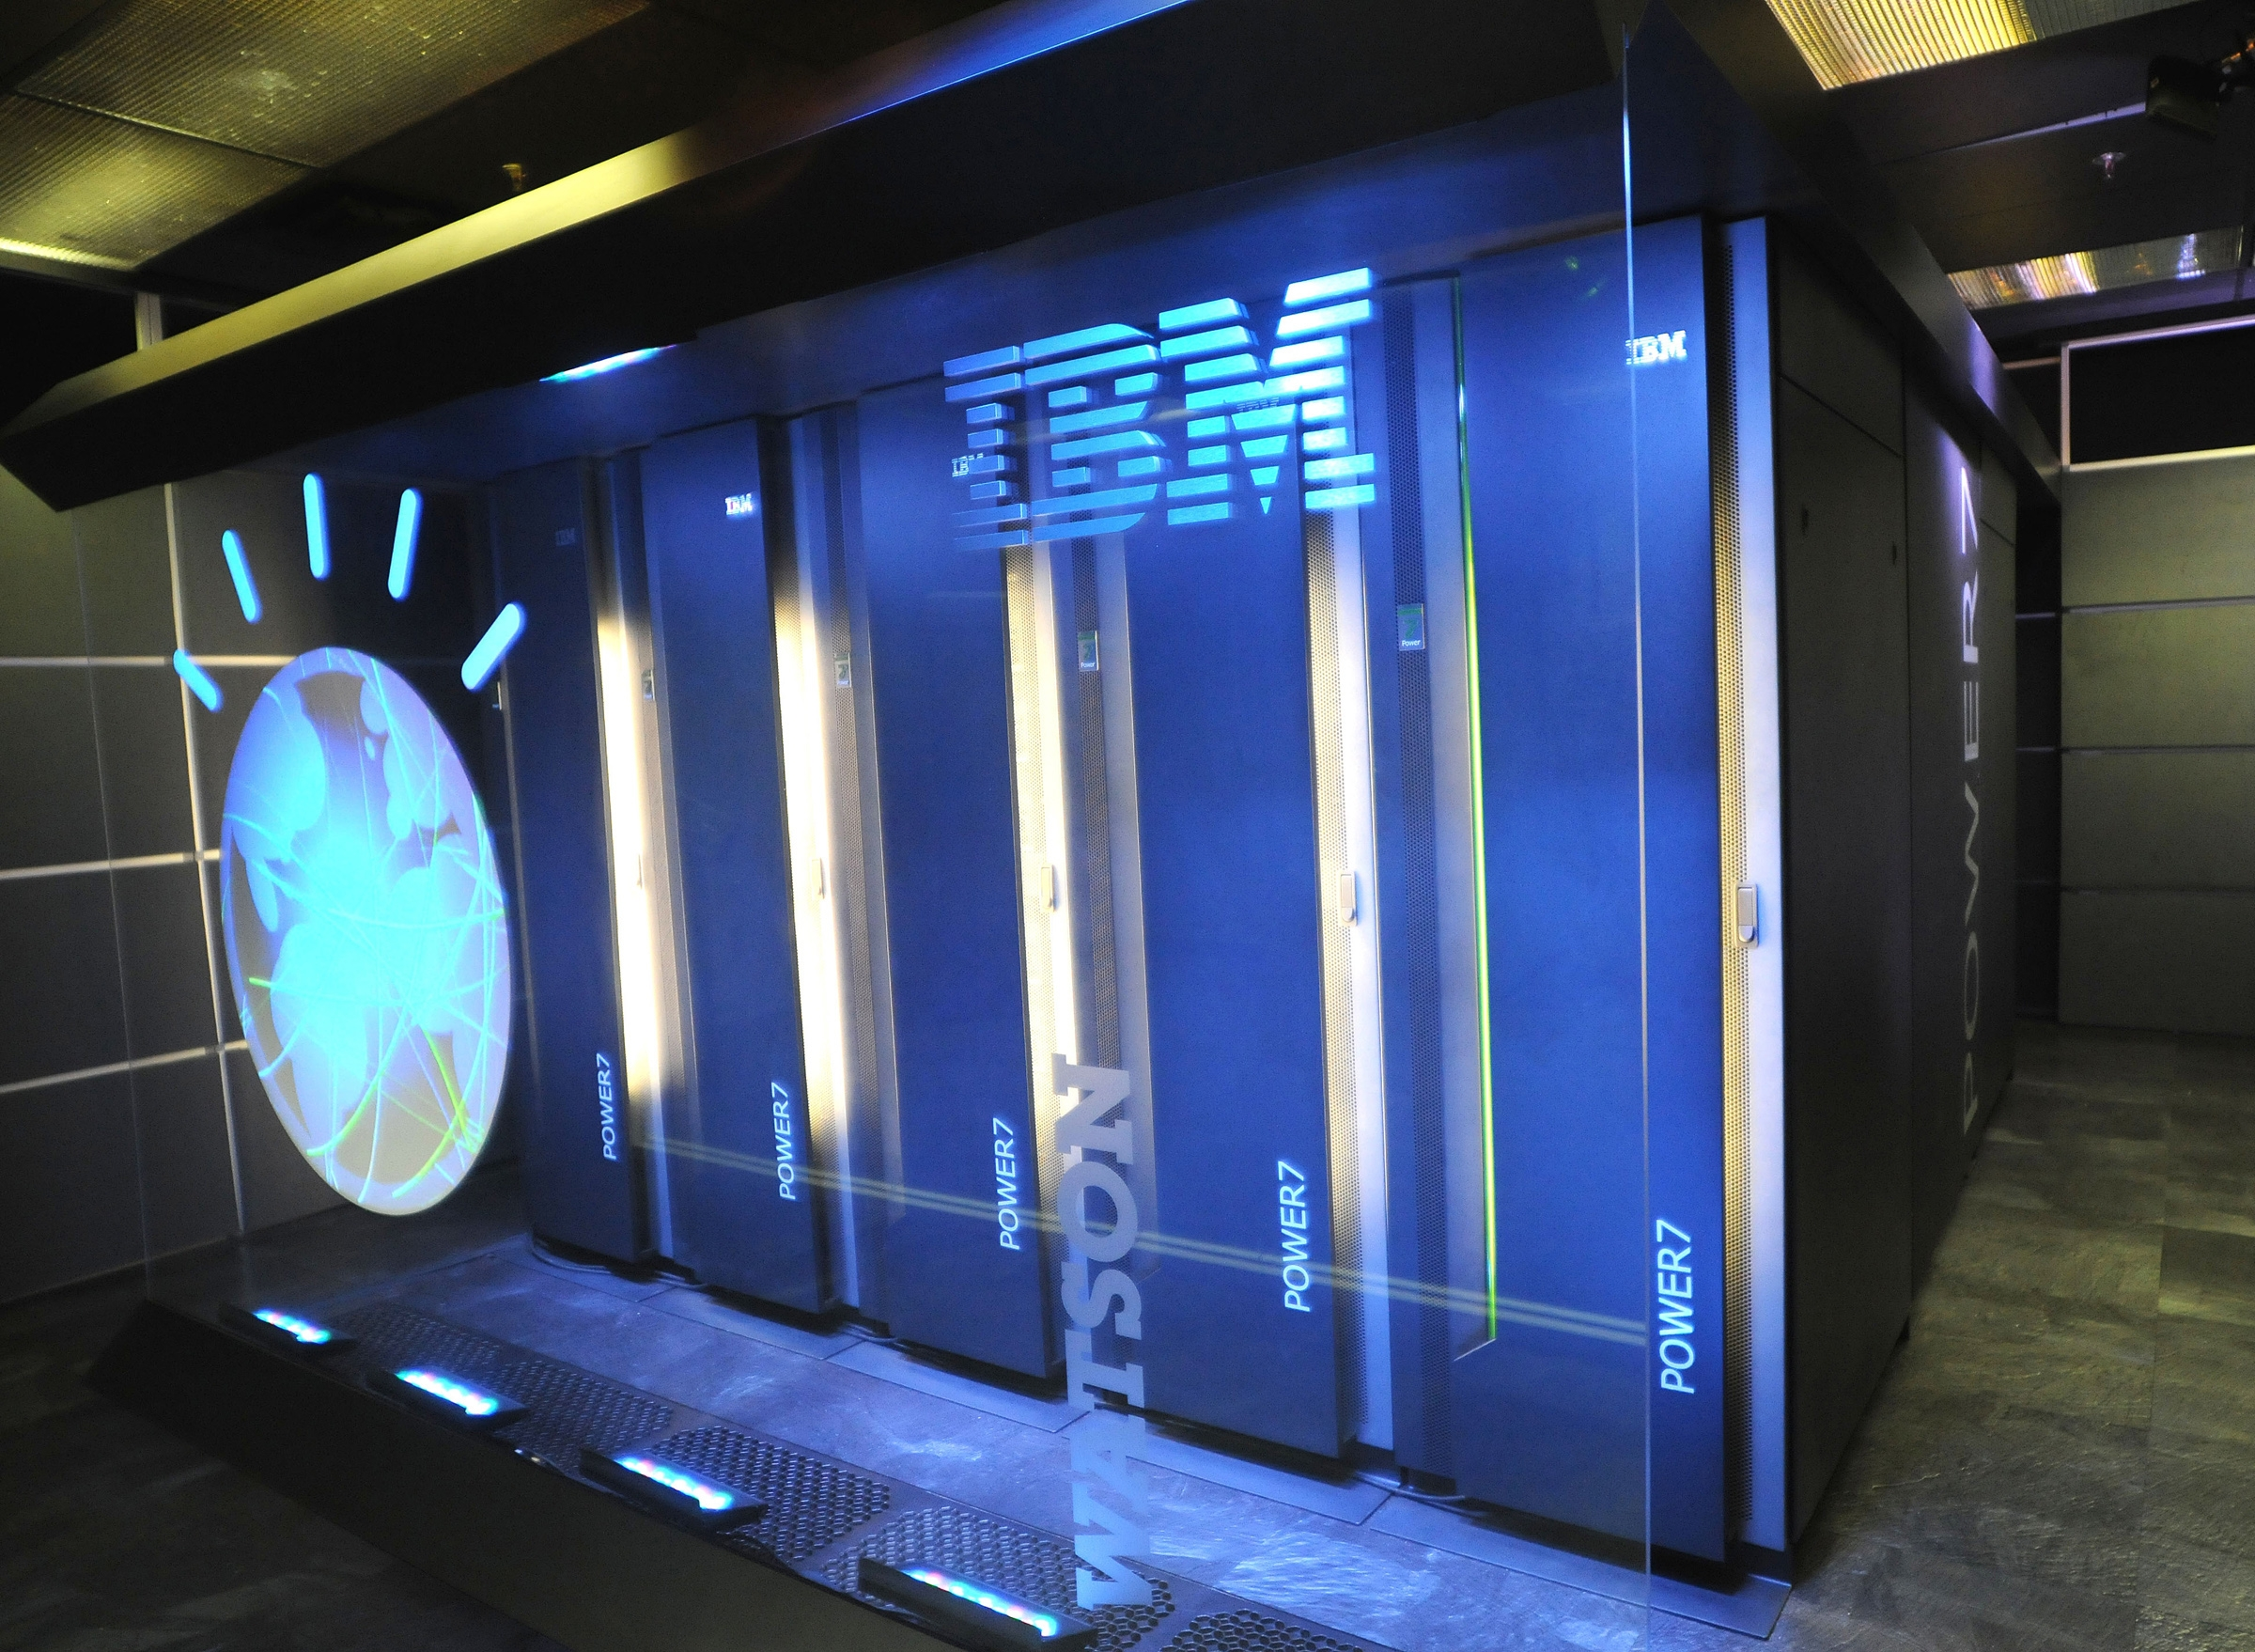 Pfizer to work with IBM on Parkinson's disease wearable